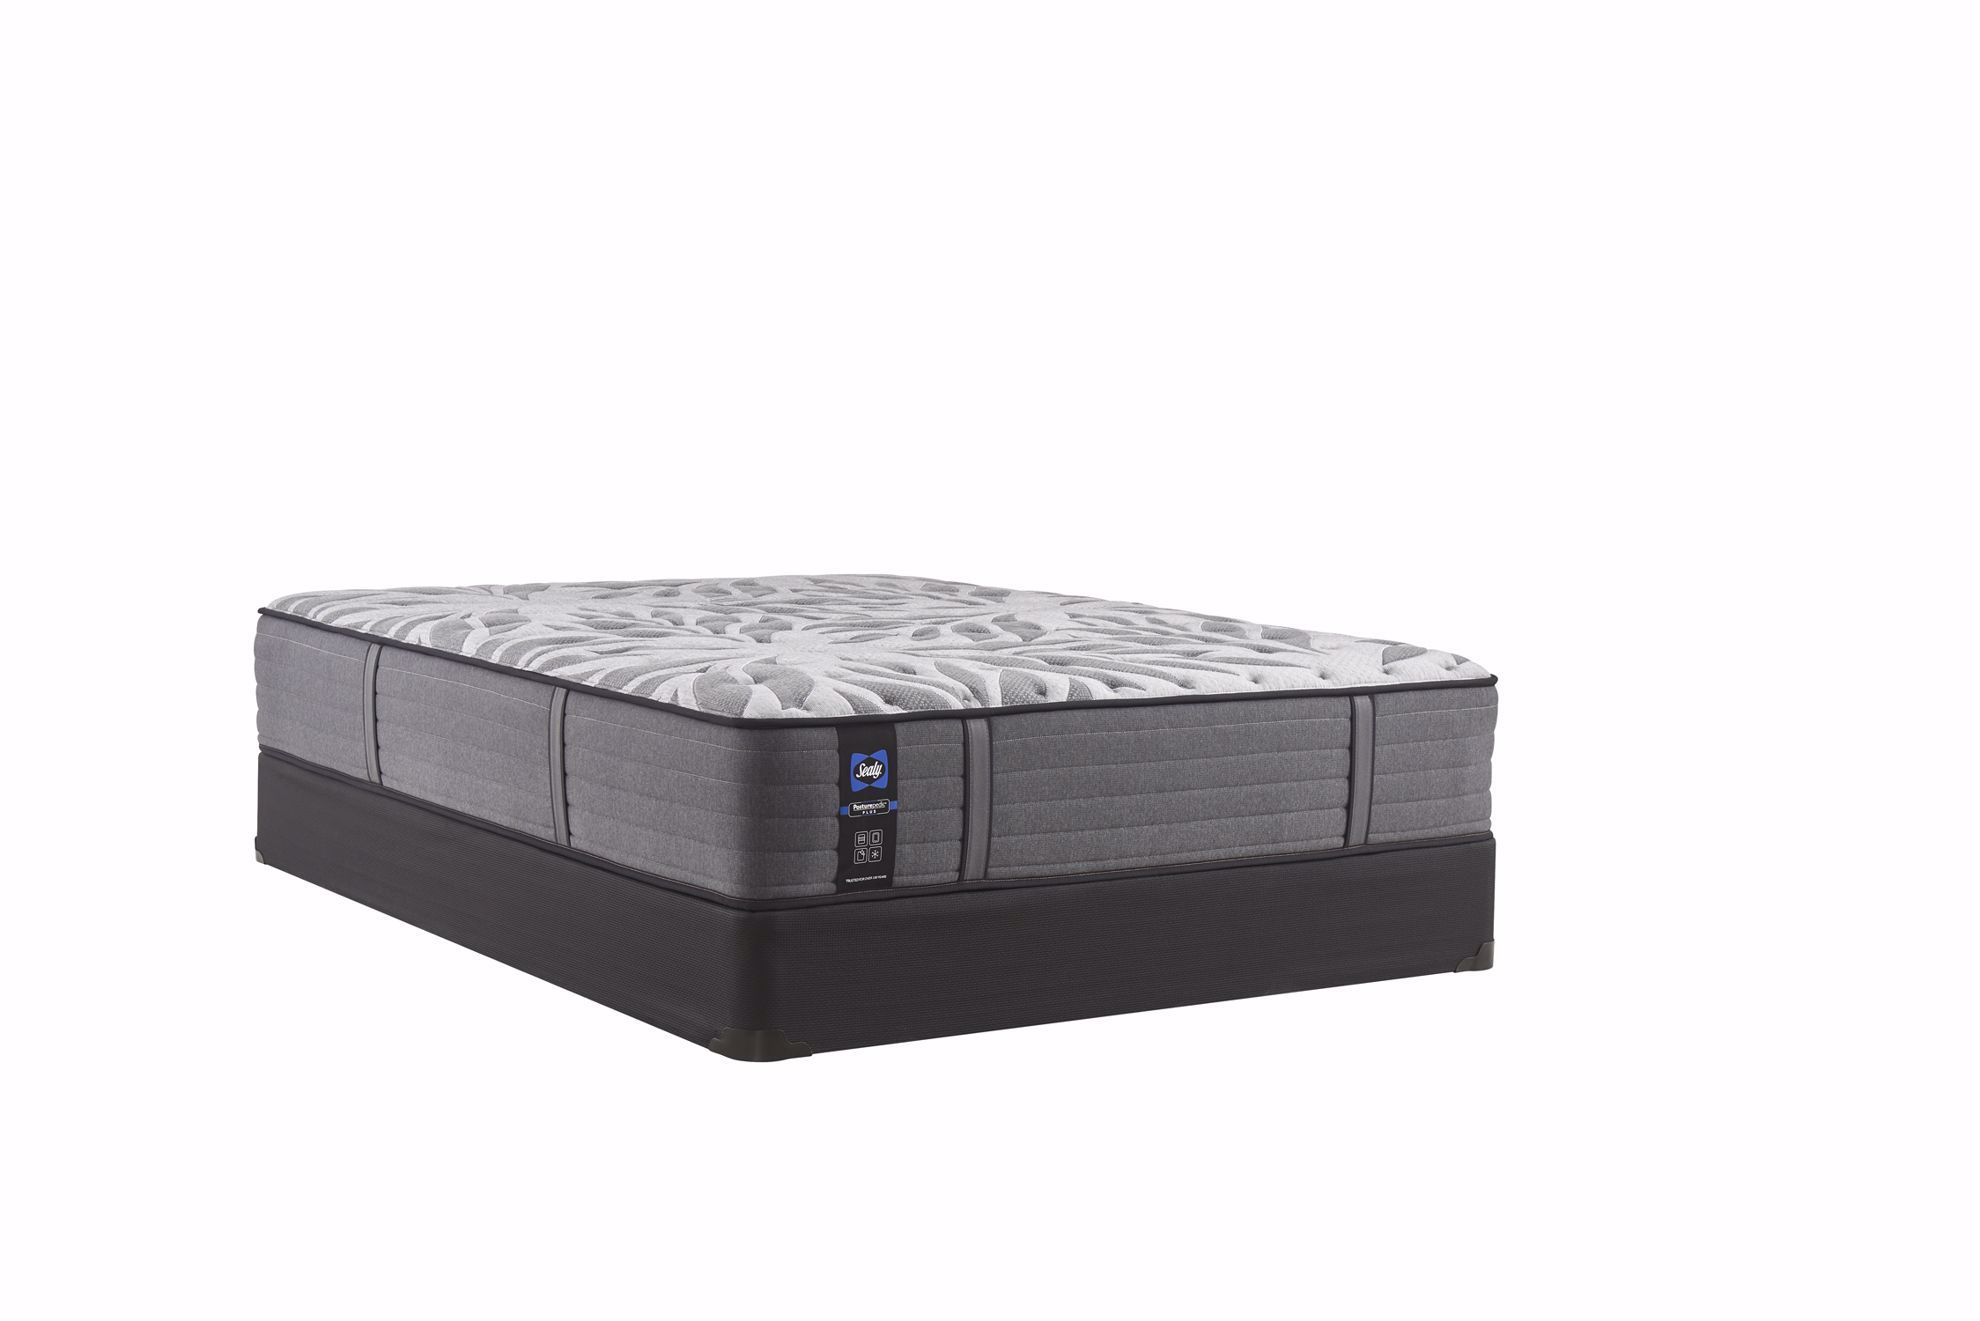 Picture of Sealy Posturepedic Plus Satisfied Plush Twin Mattress Set